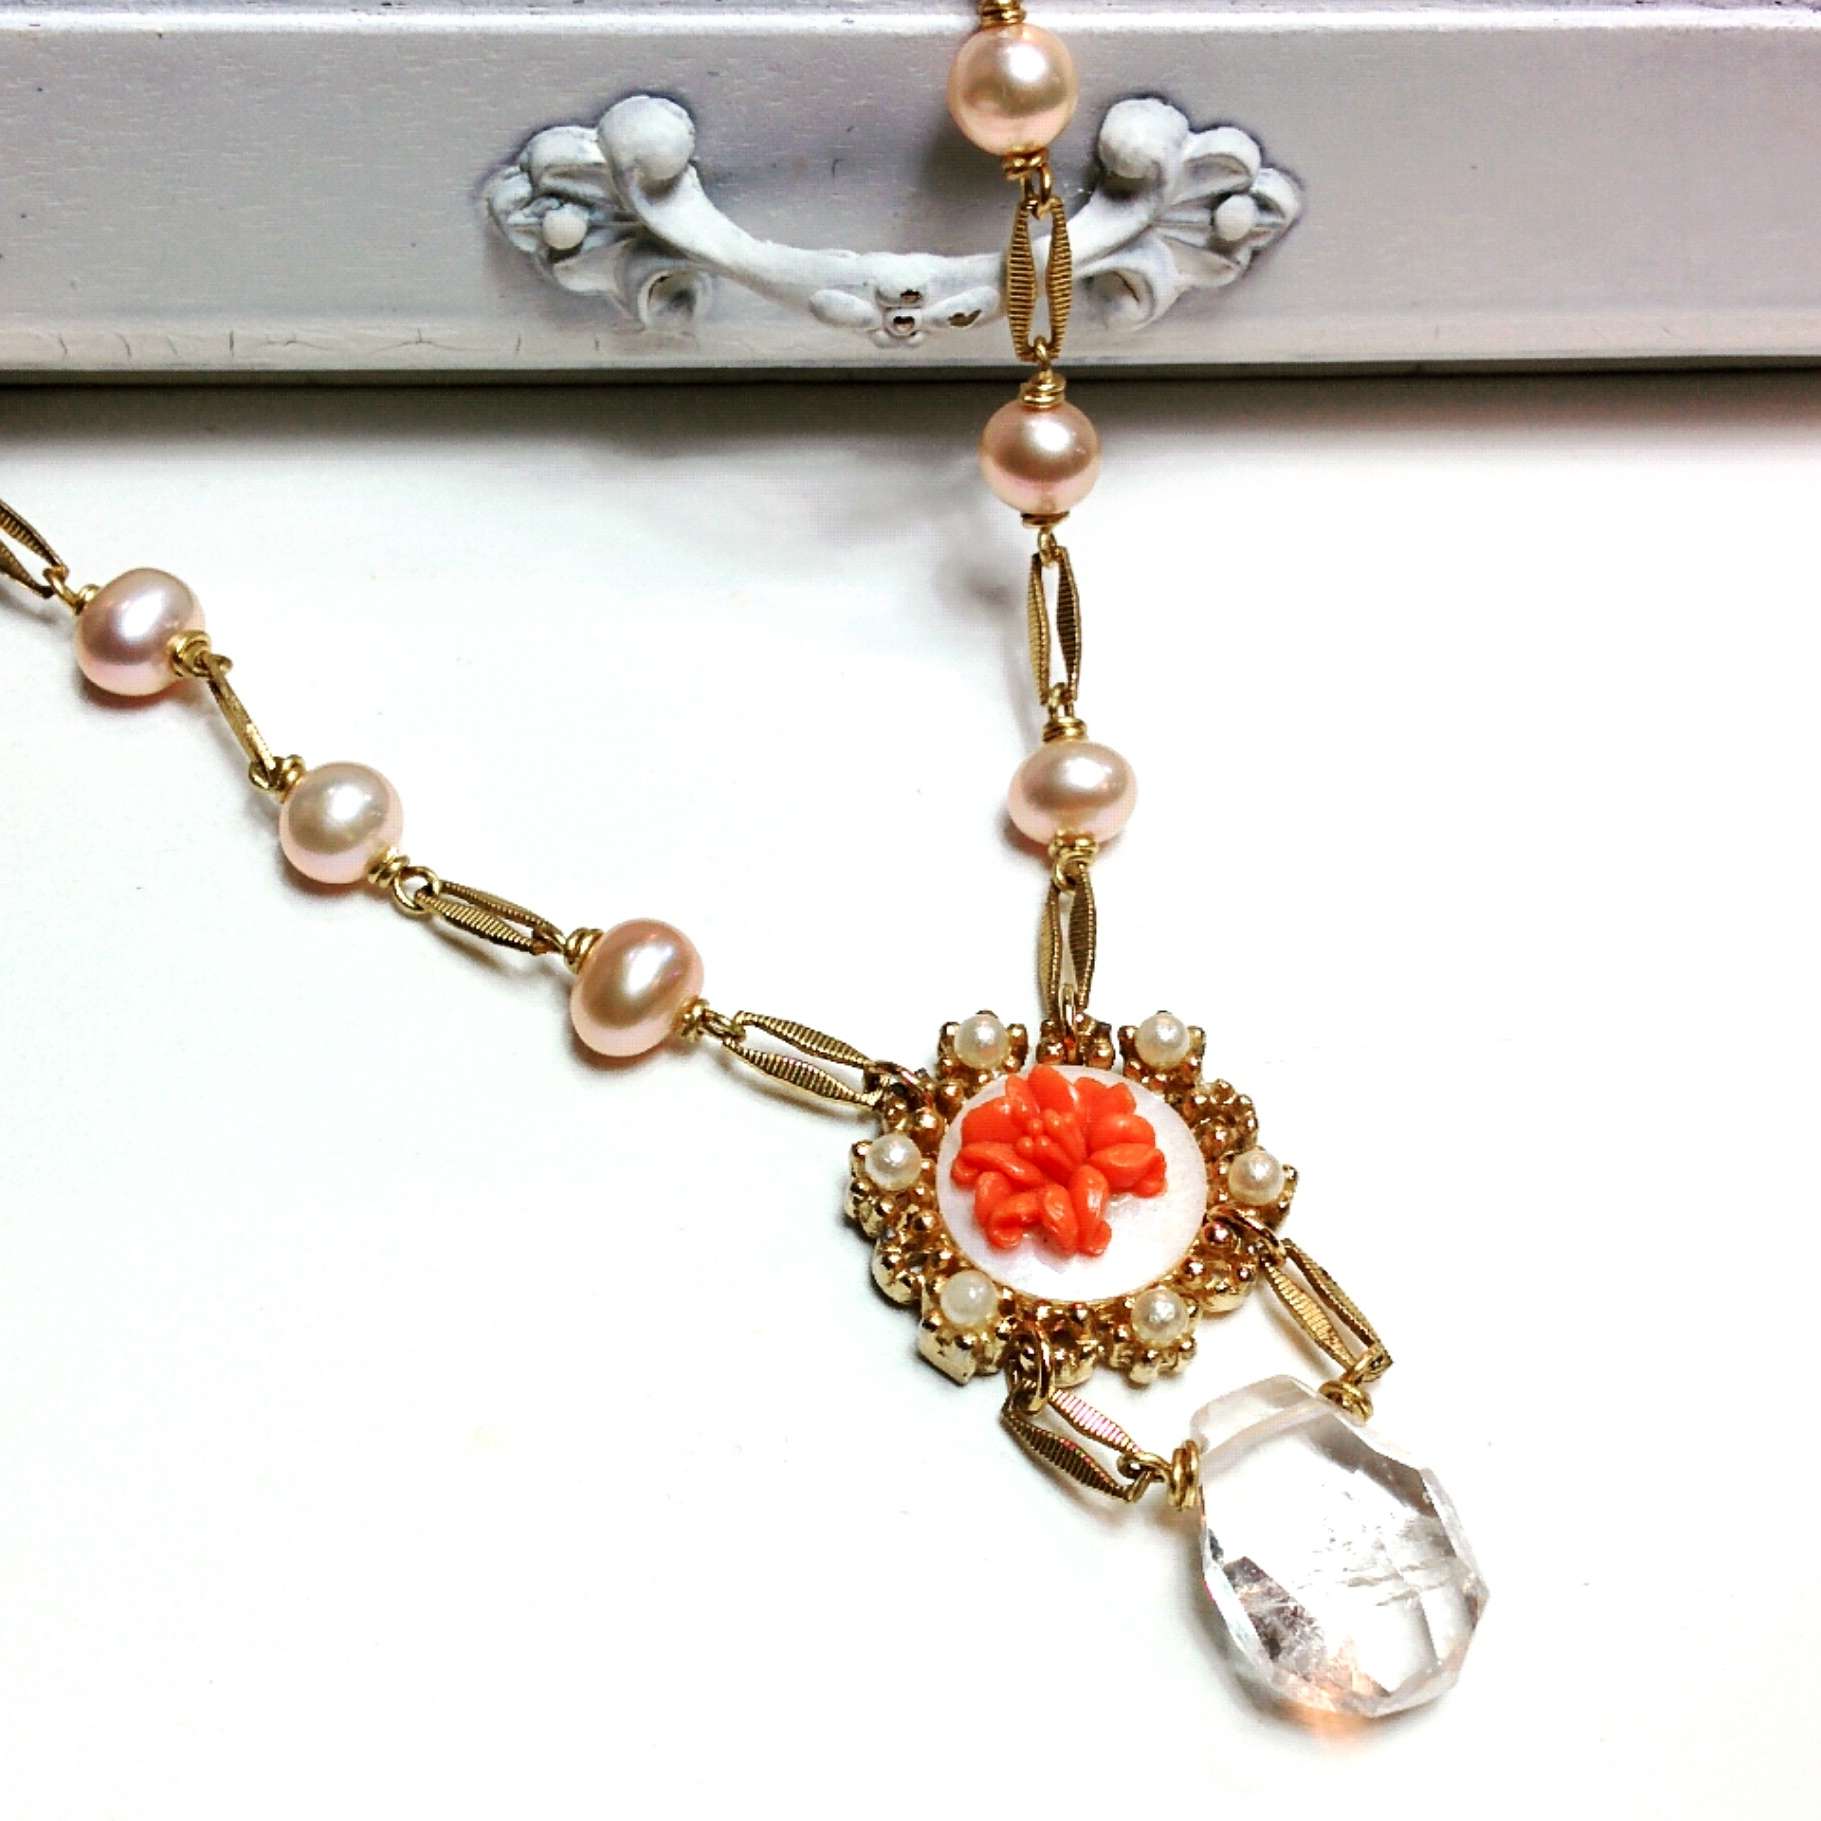 A beautiful crystal quartz stone fastened to a refurbished vintage treasure featuring a carved coral flower. Chain made using fresh water pearls and vintage components.